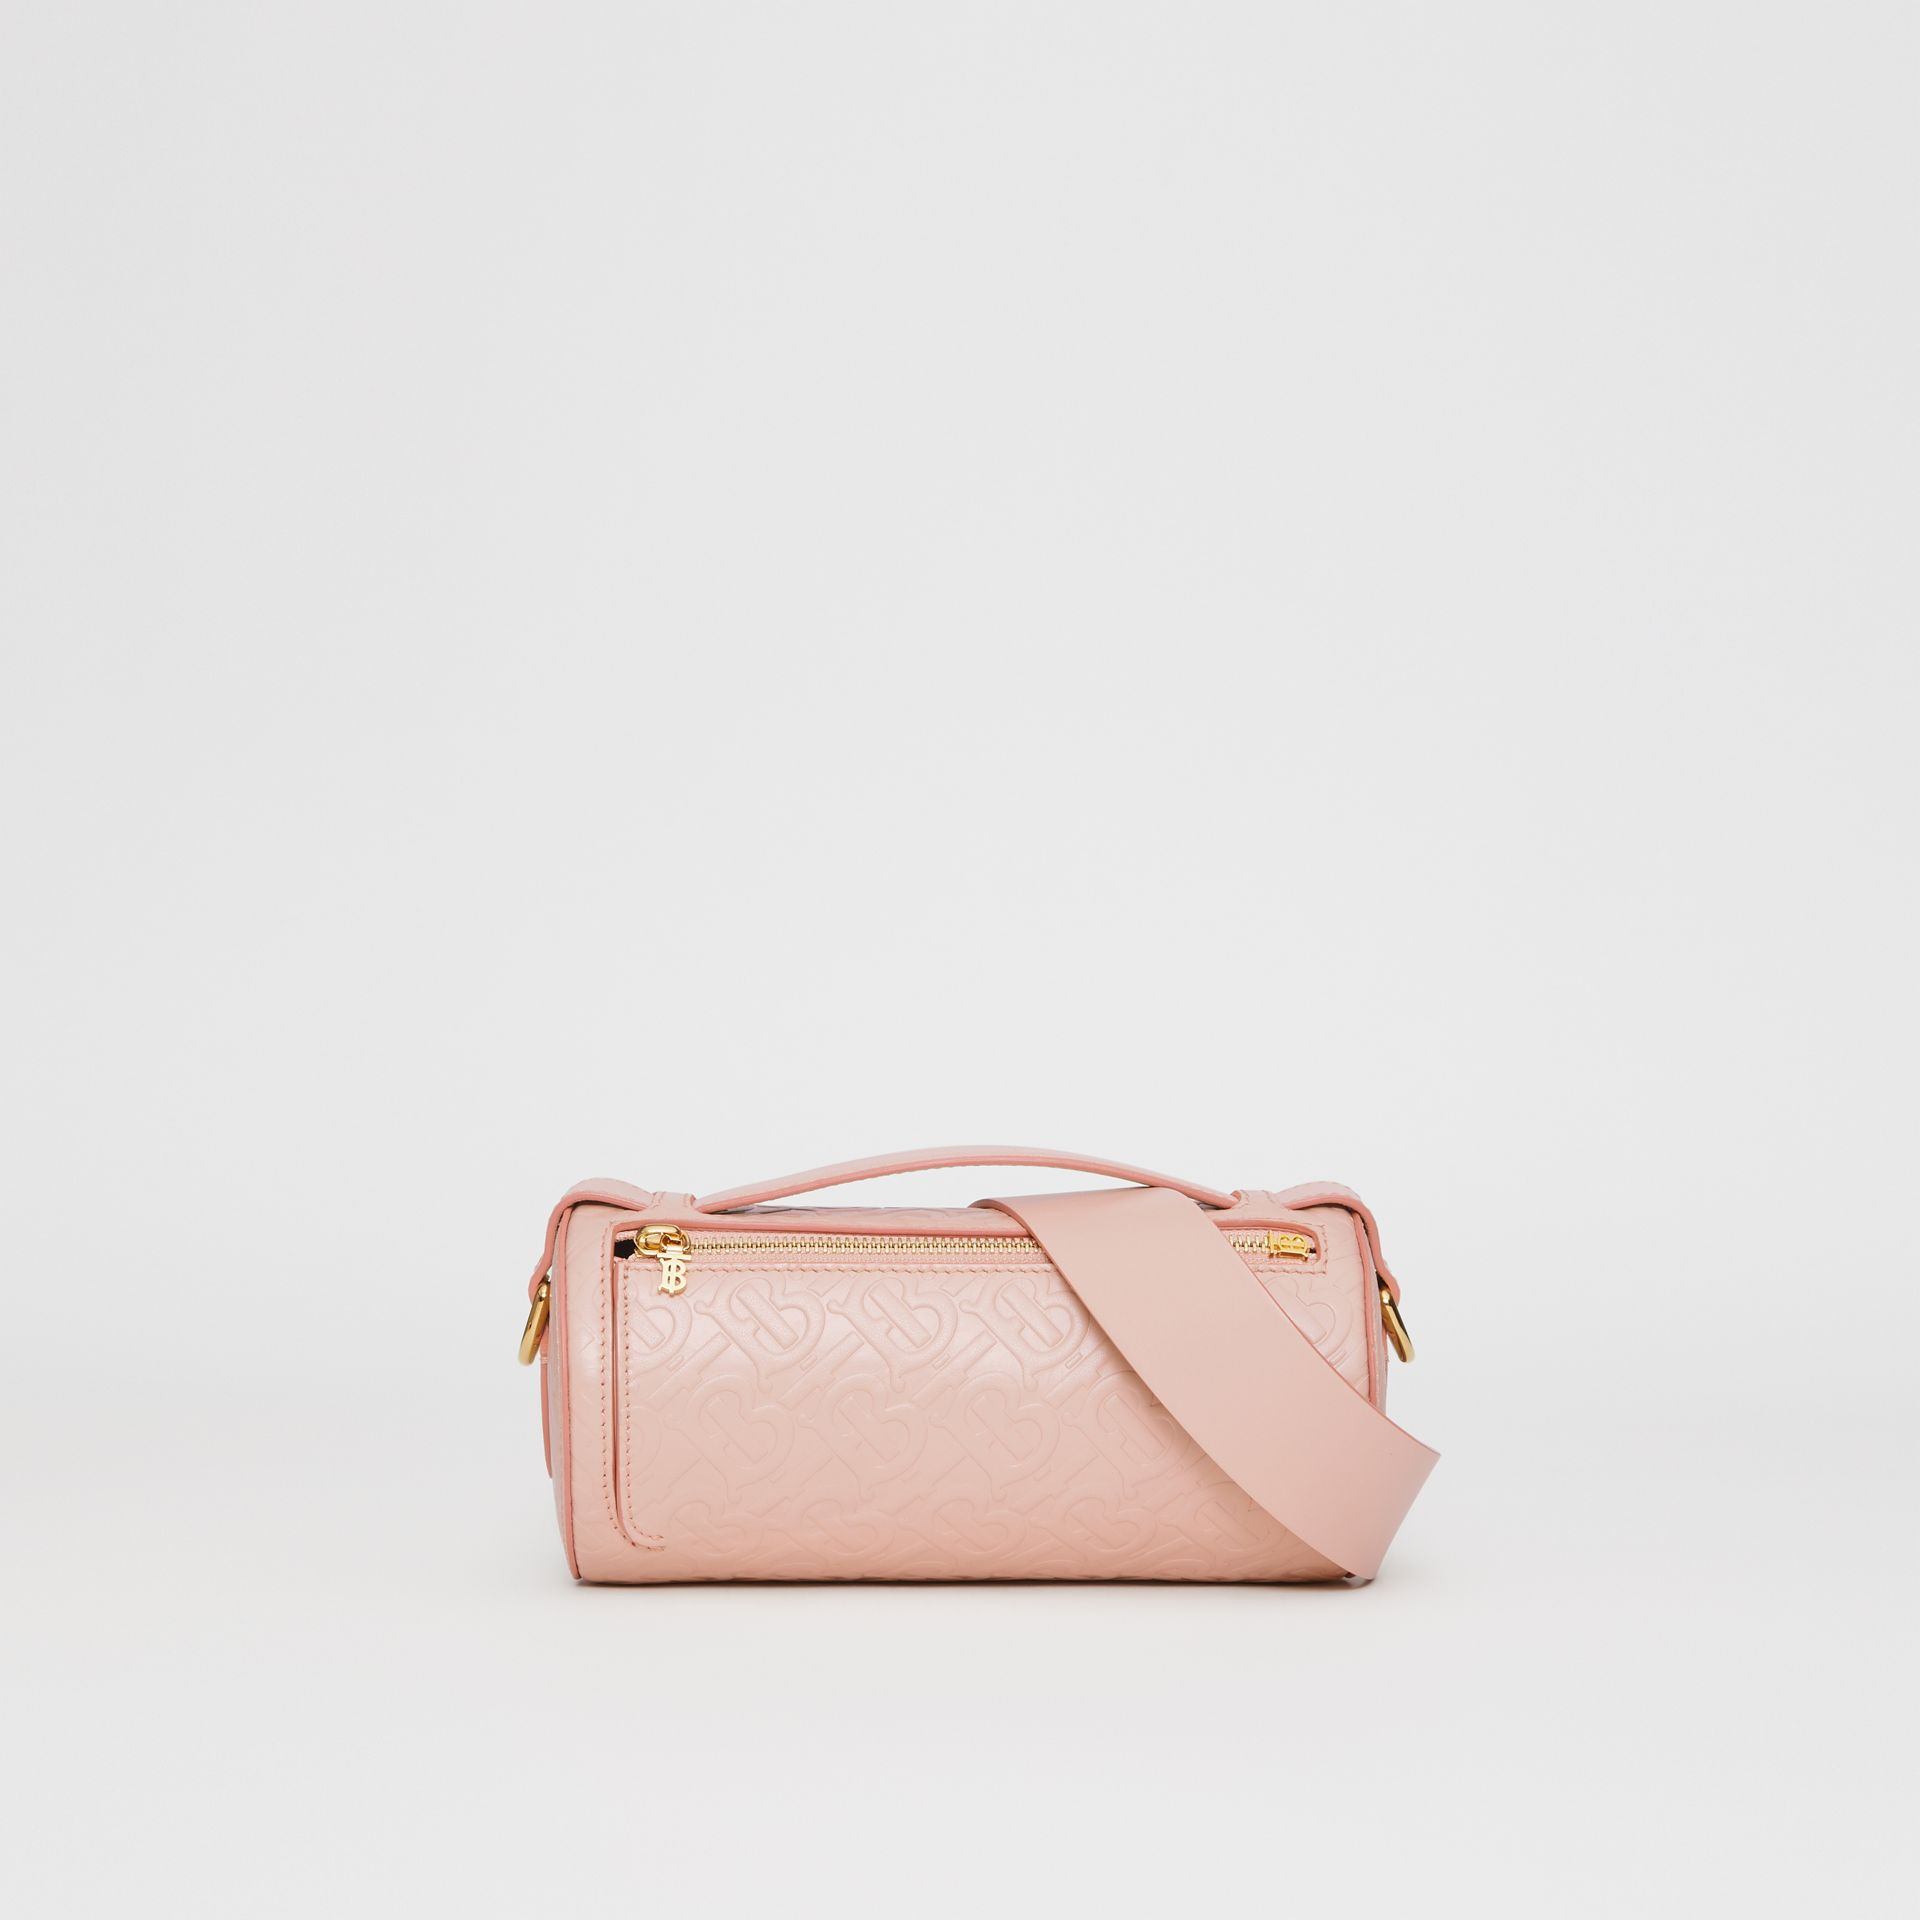 Sac The Barrel en cuir Monogram (Beige Rose) - Femme | Burberry - photo de la galerie 0